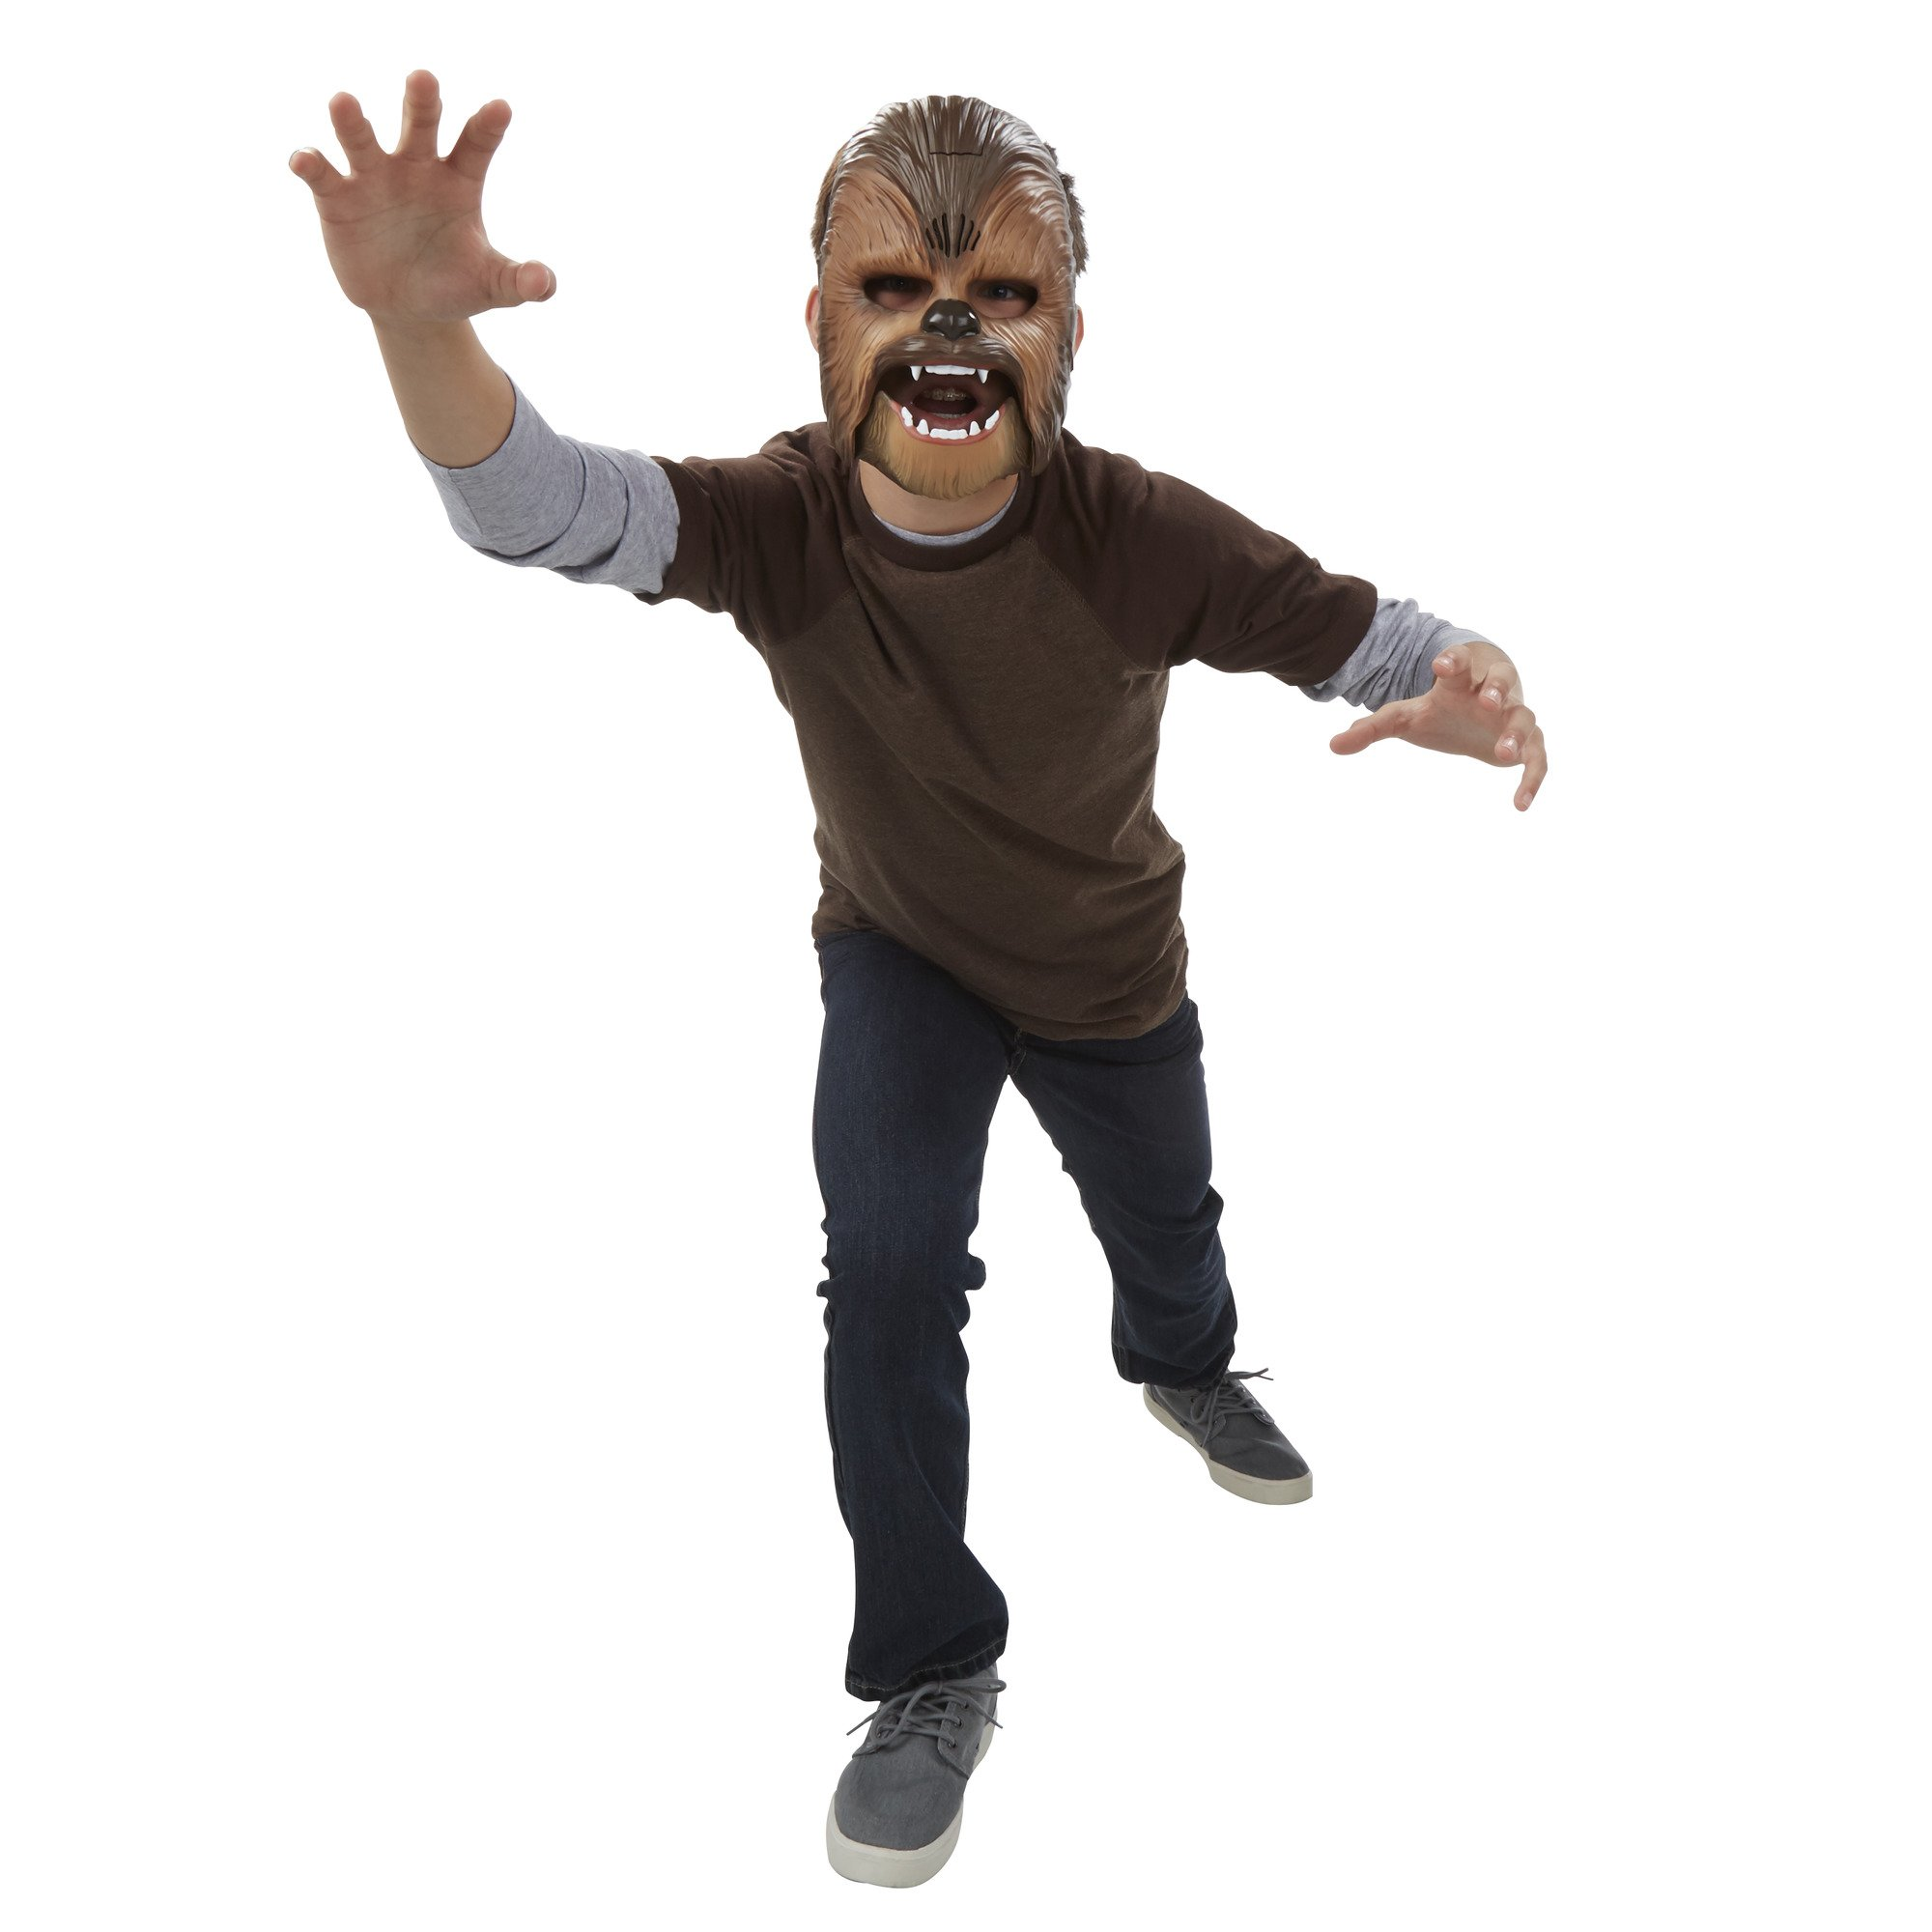 Star Wars Movie Roaring Chewbacca Wookiee Sounds Mask, Ages 5 and up (Amazon Exclusive) by Star Wars (Image #6)